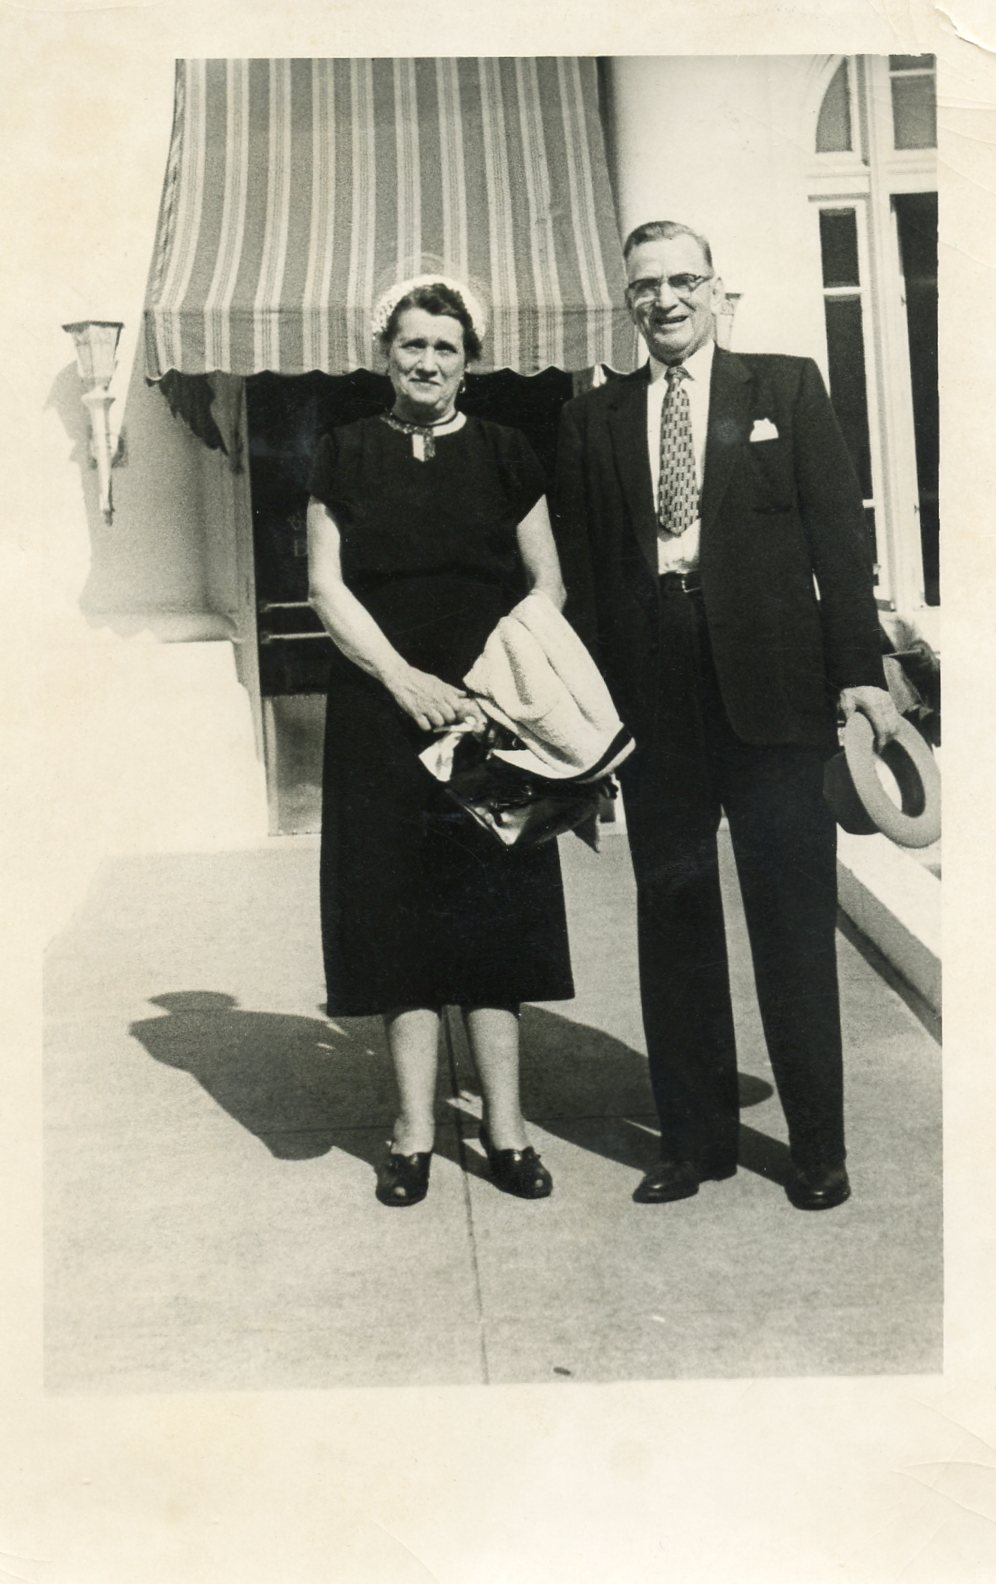 Photograph of Ona Fritz and Dr. Roy Pearson